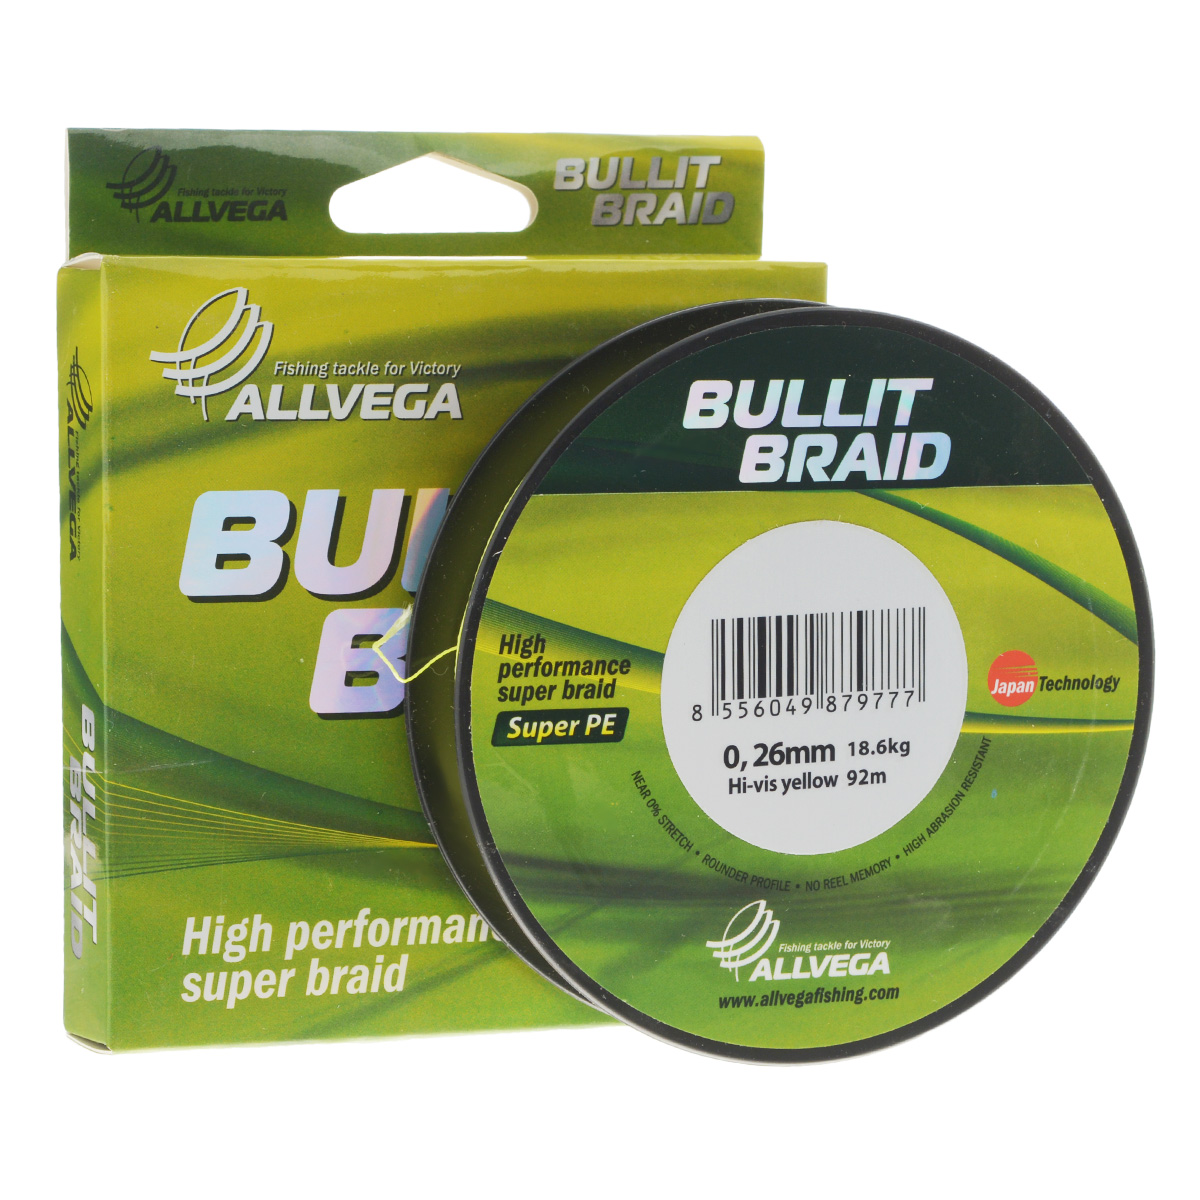 Леска плетеная Allvega Bullit Braid, цвет: ярко-желтый, 92 м, 0,26 мм, 18,6 кг